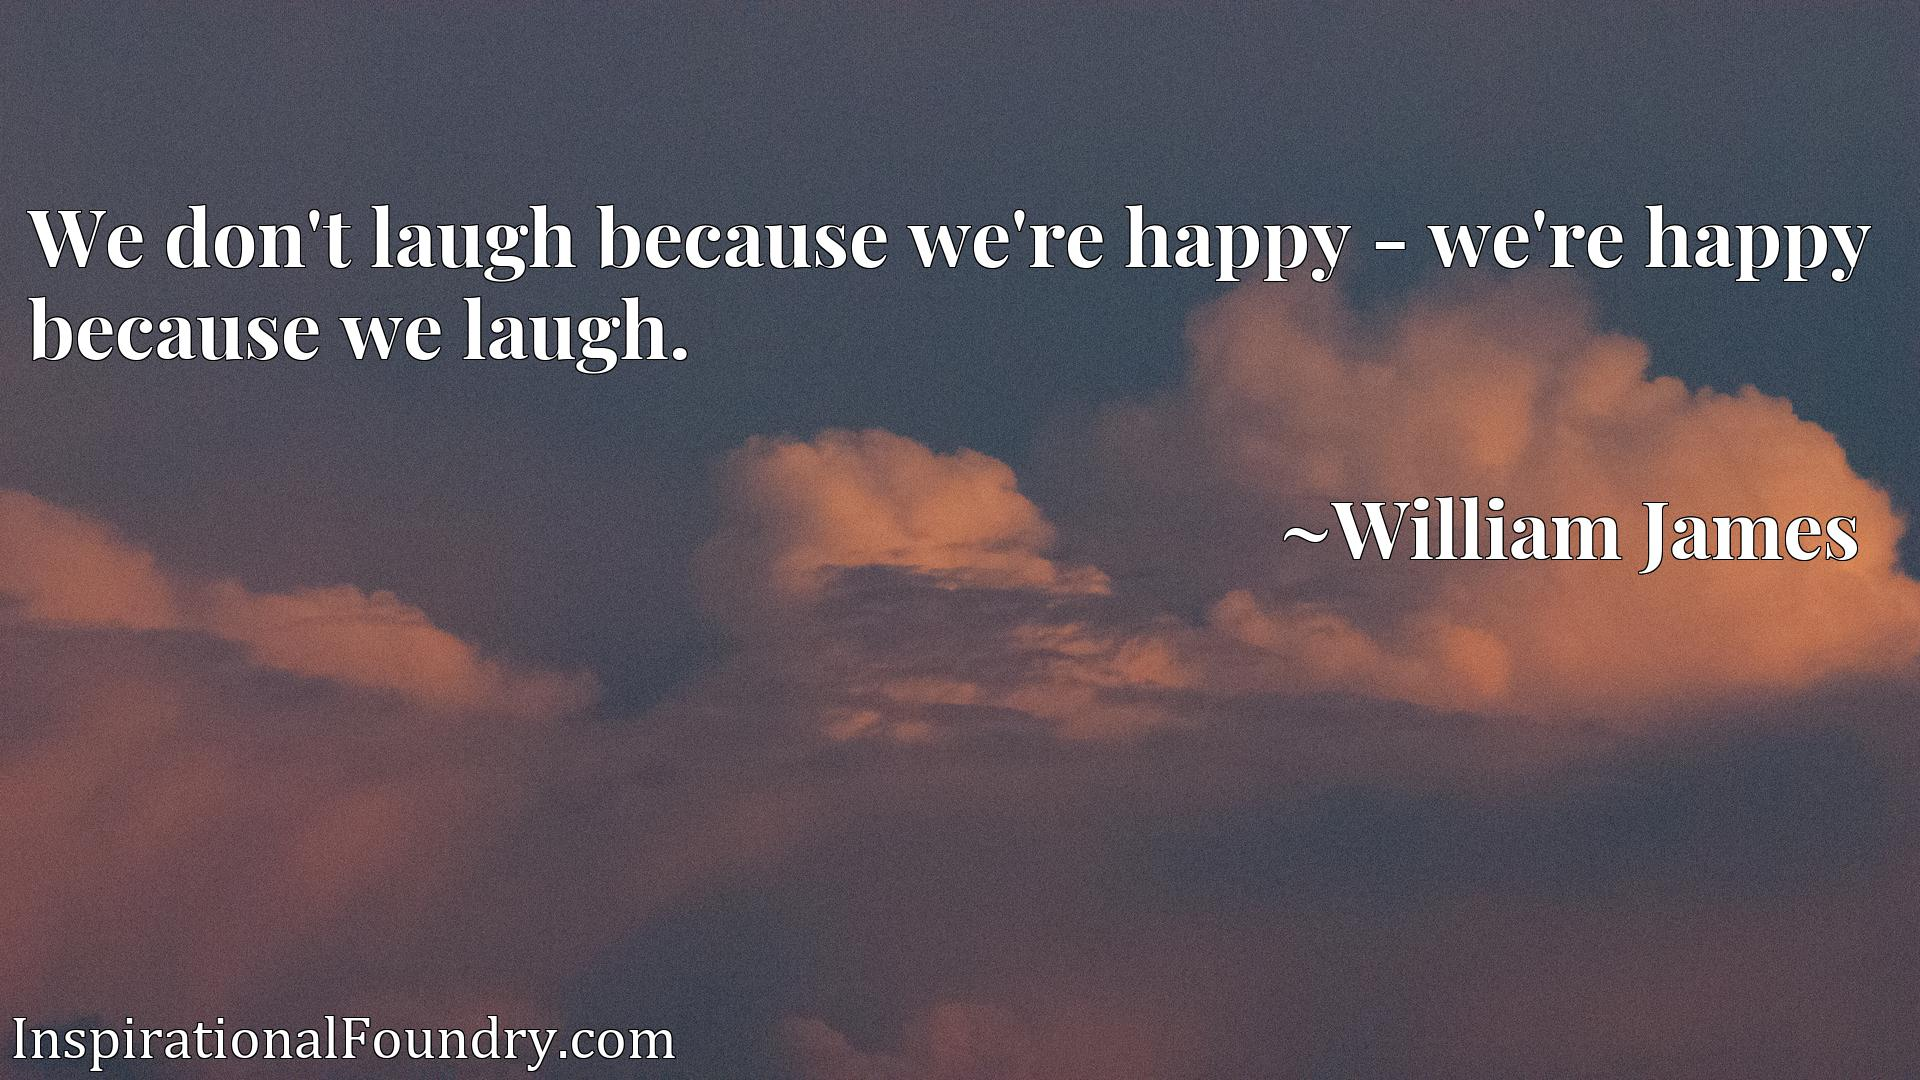 We don't laugh because we're happy - we're happy because we laugh.